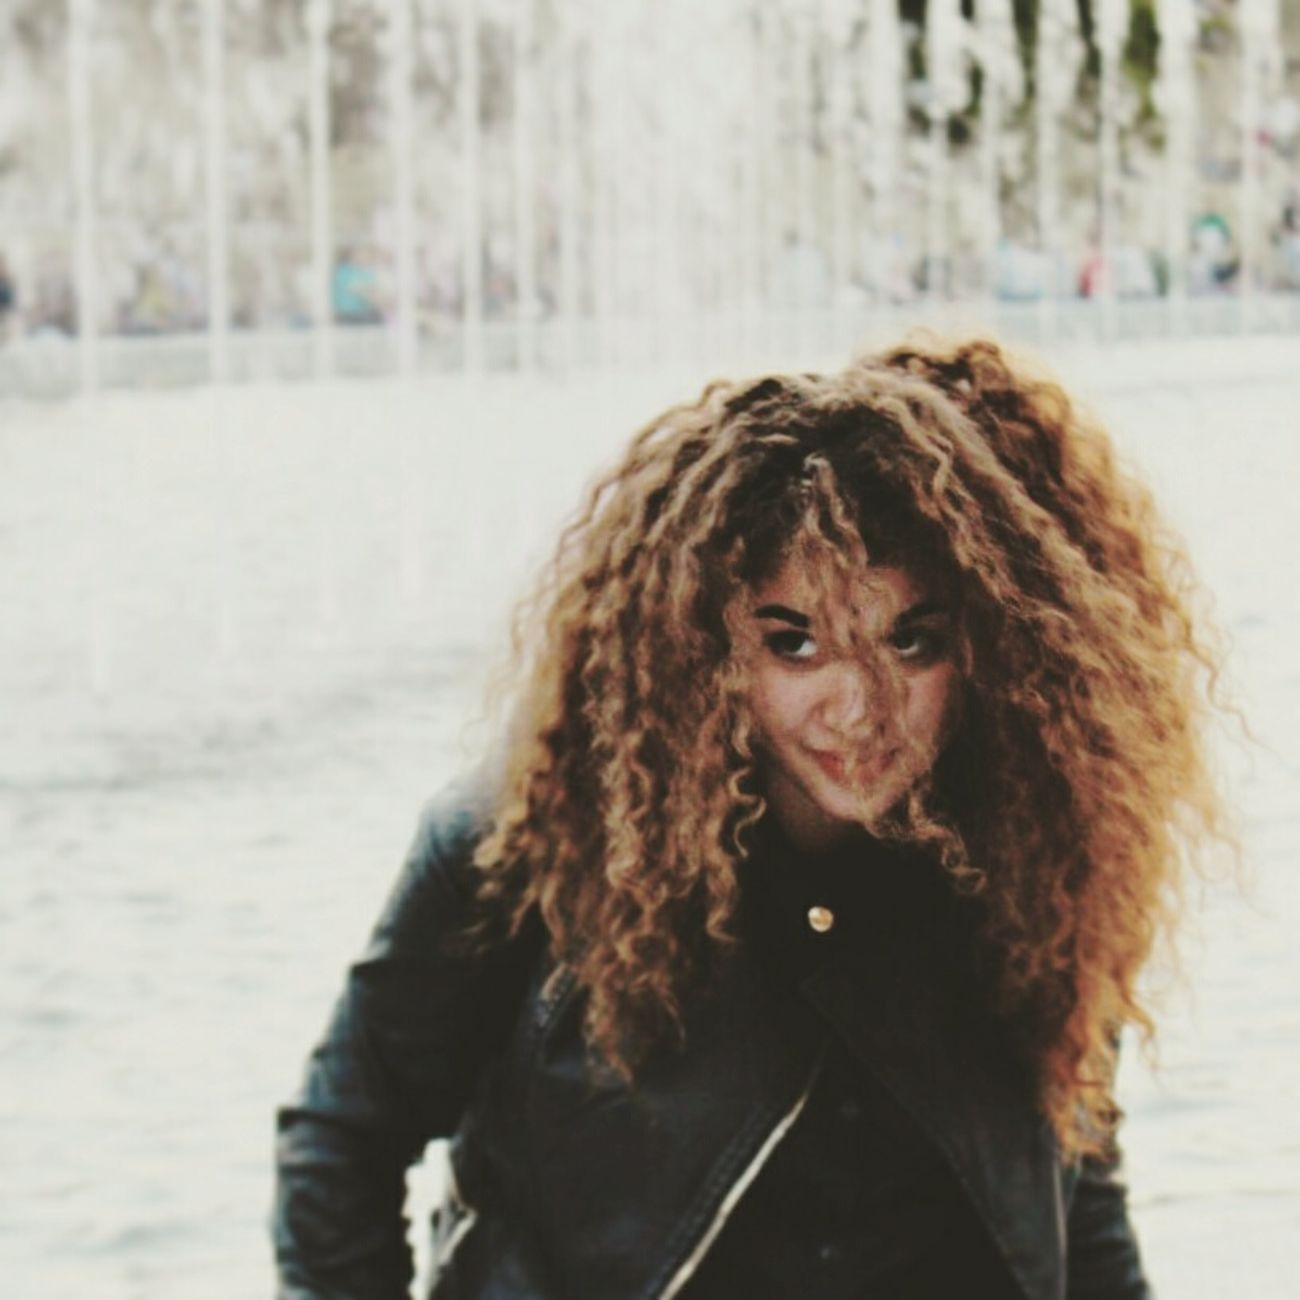 That's me :) That's Me Hi! My Curly Hair Curlyhairgirls Student Polishstudent GirlfromUkraine